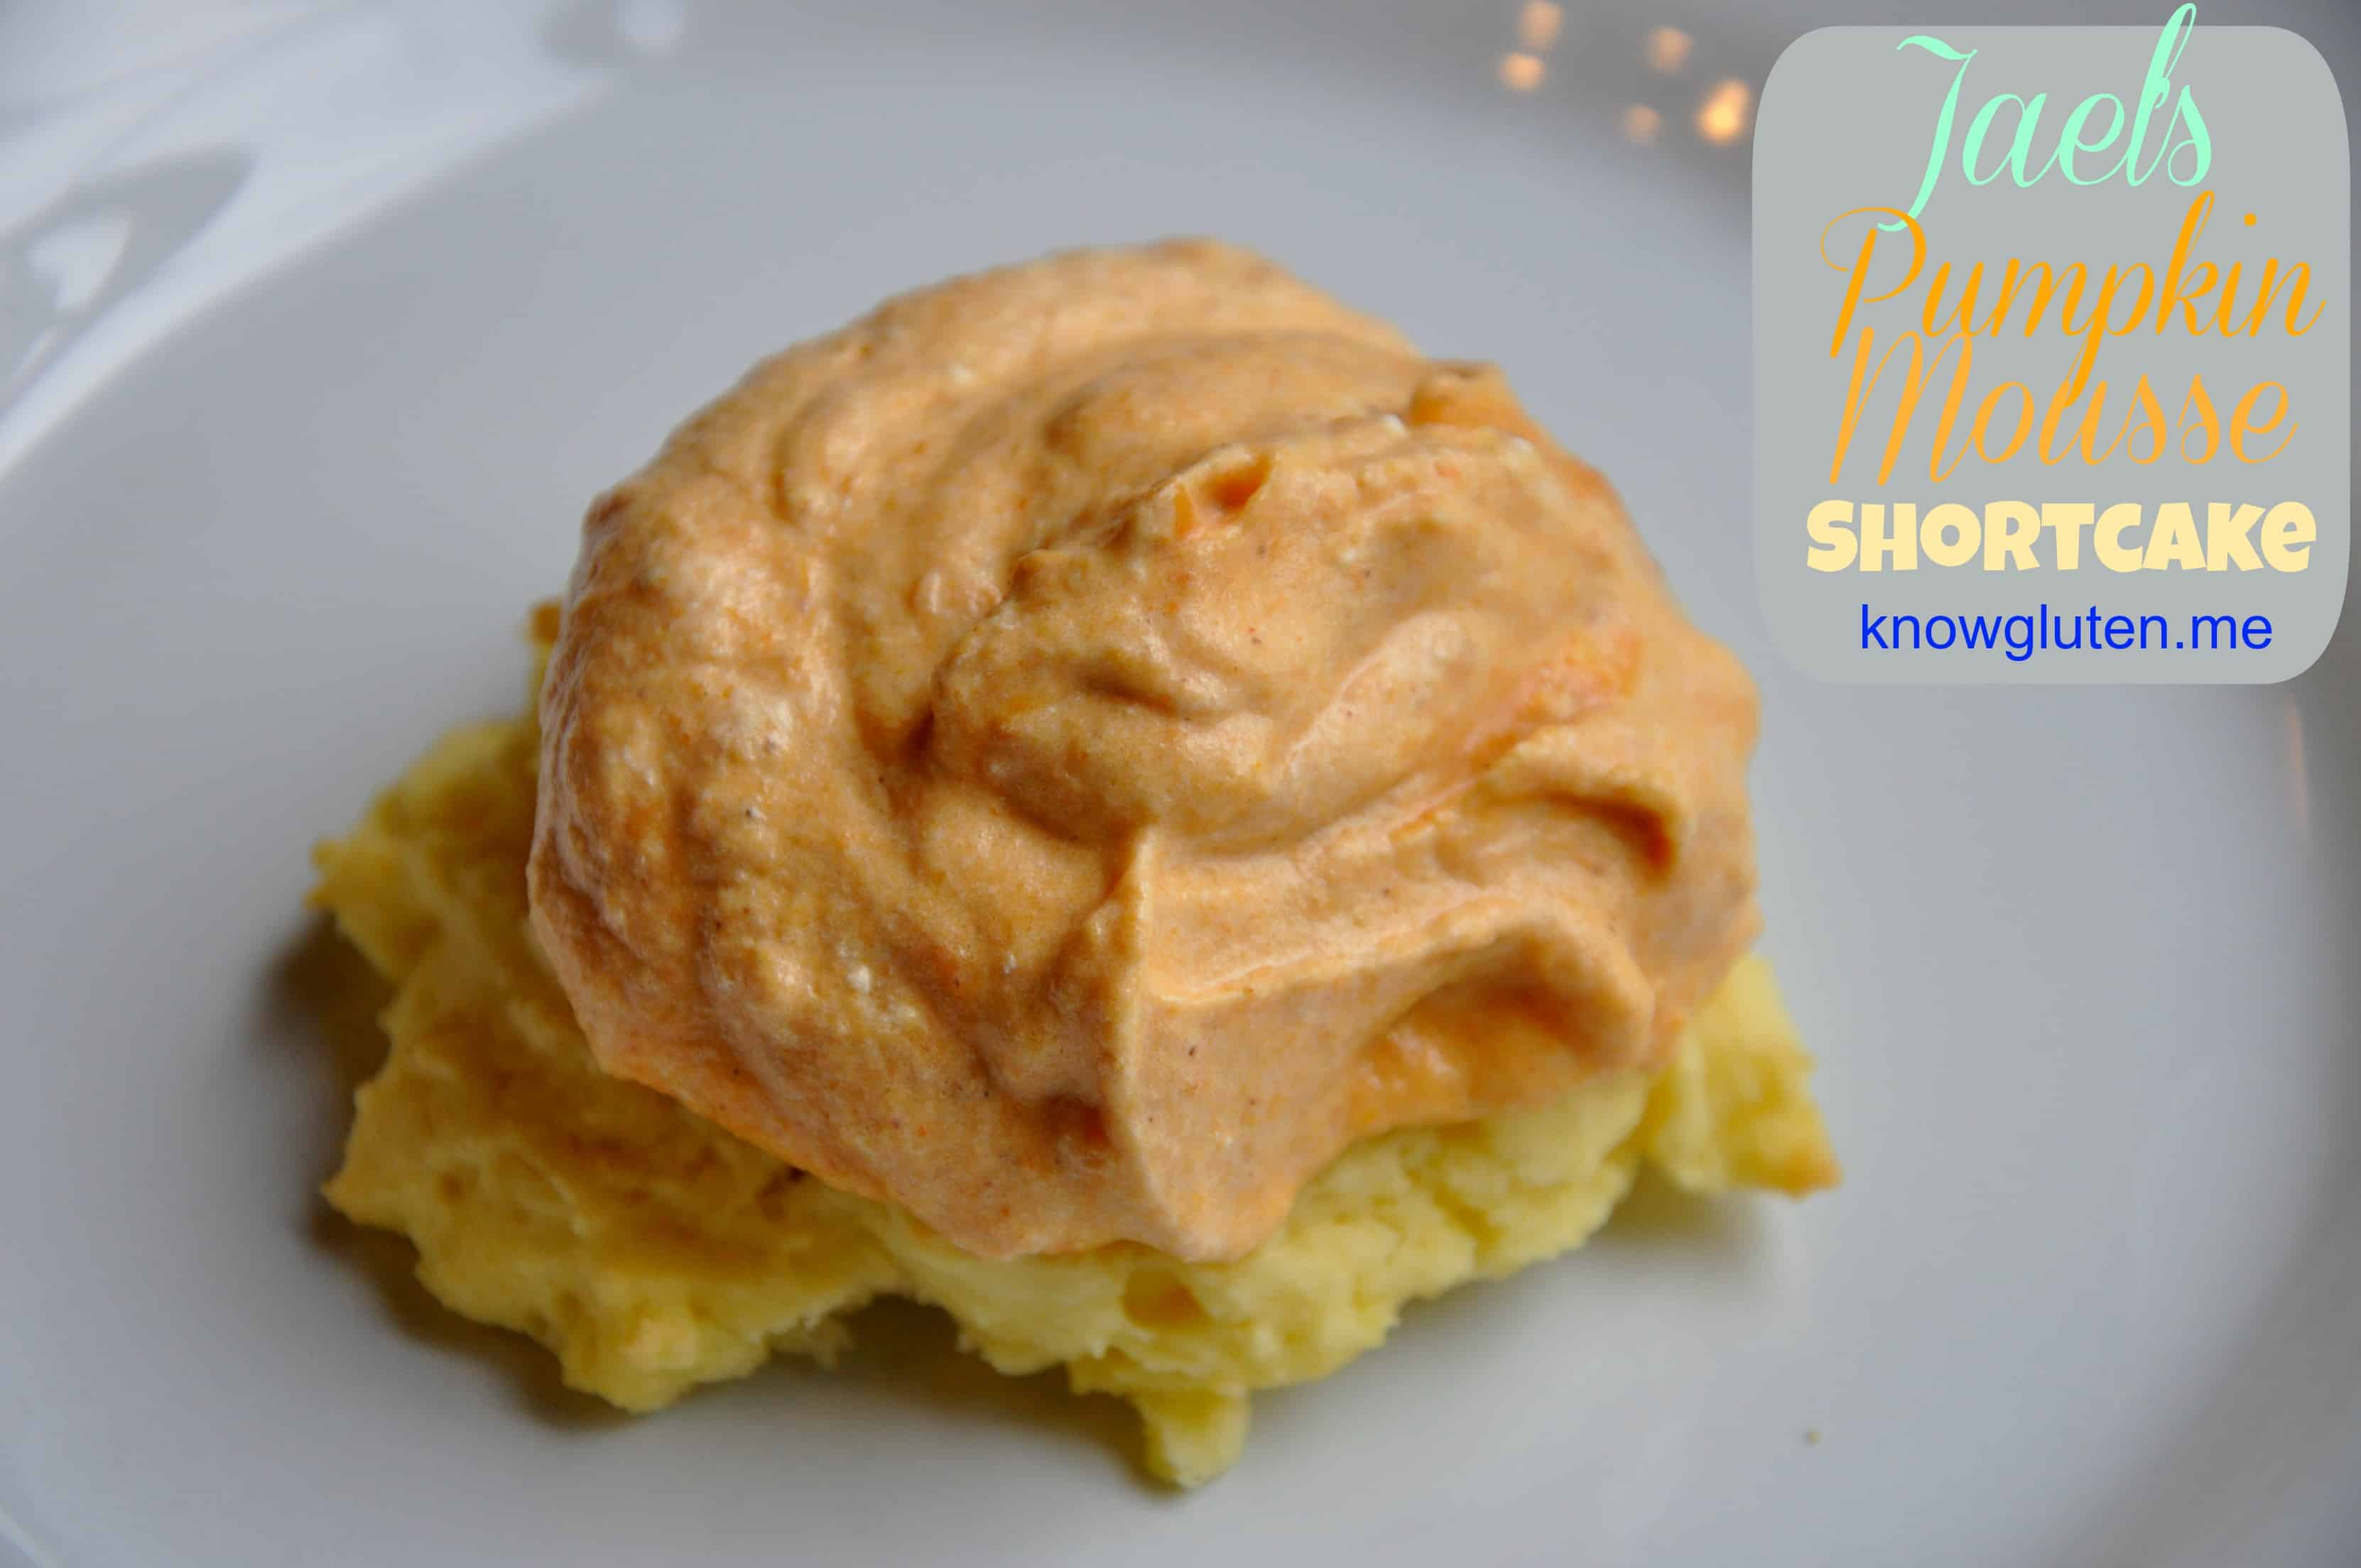 Gluten Free Pumpkin Mousse Shortcake from knowgluten.me